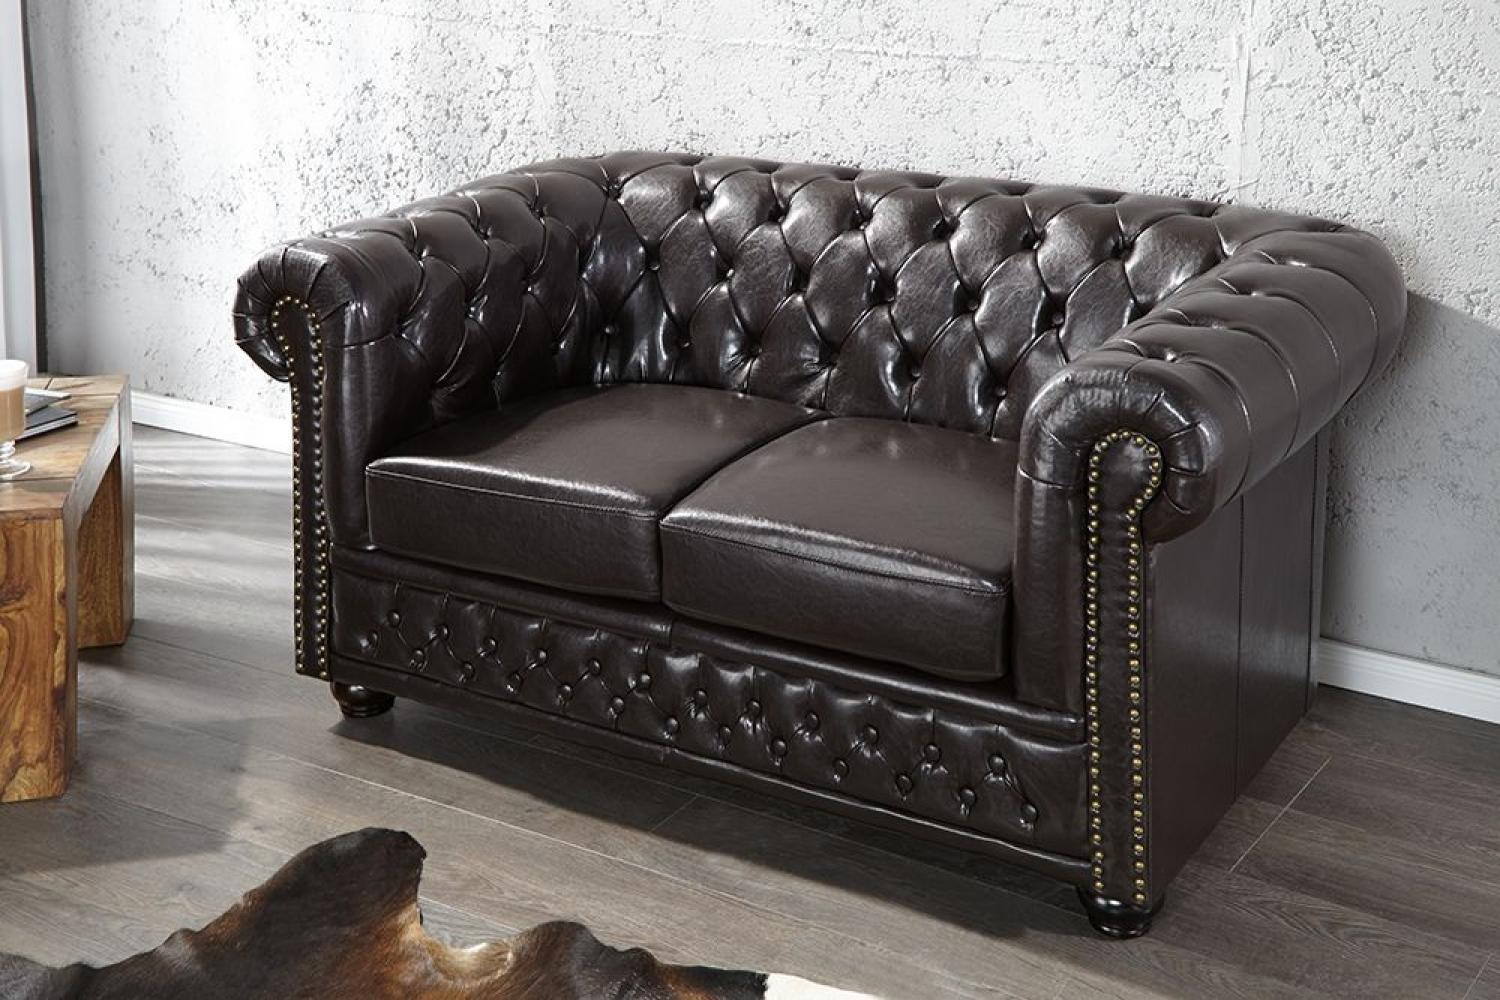 Photos canap chesterfield convertible 2 places - Chesterfield 2 places cuir ...